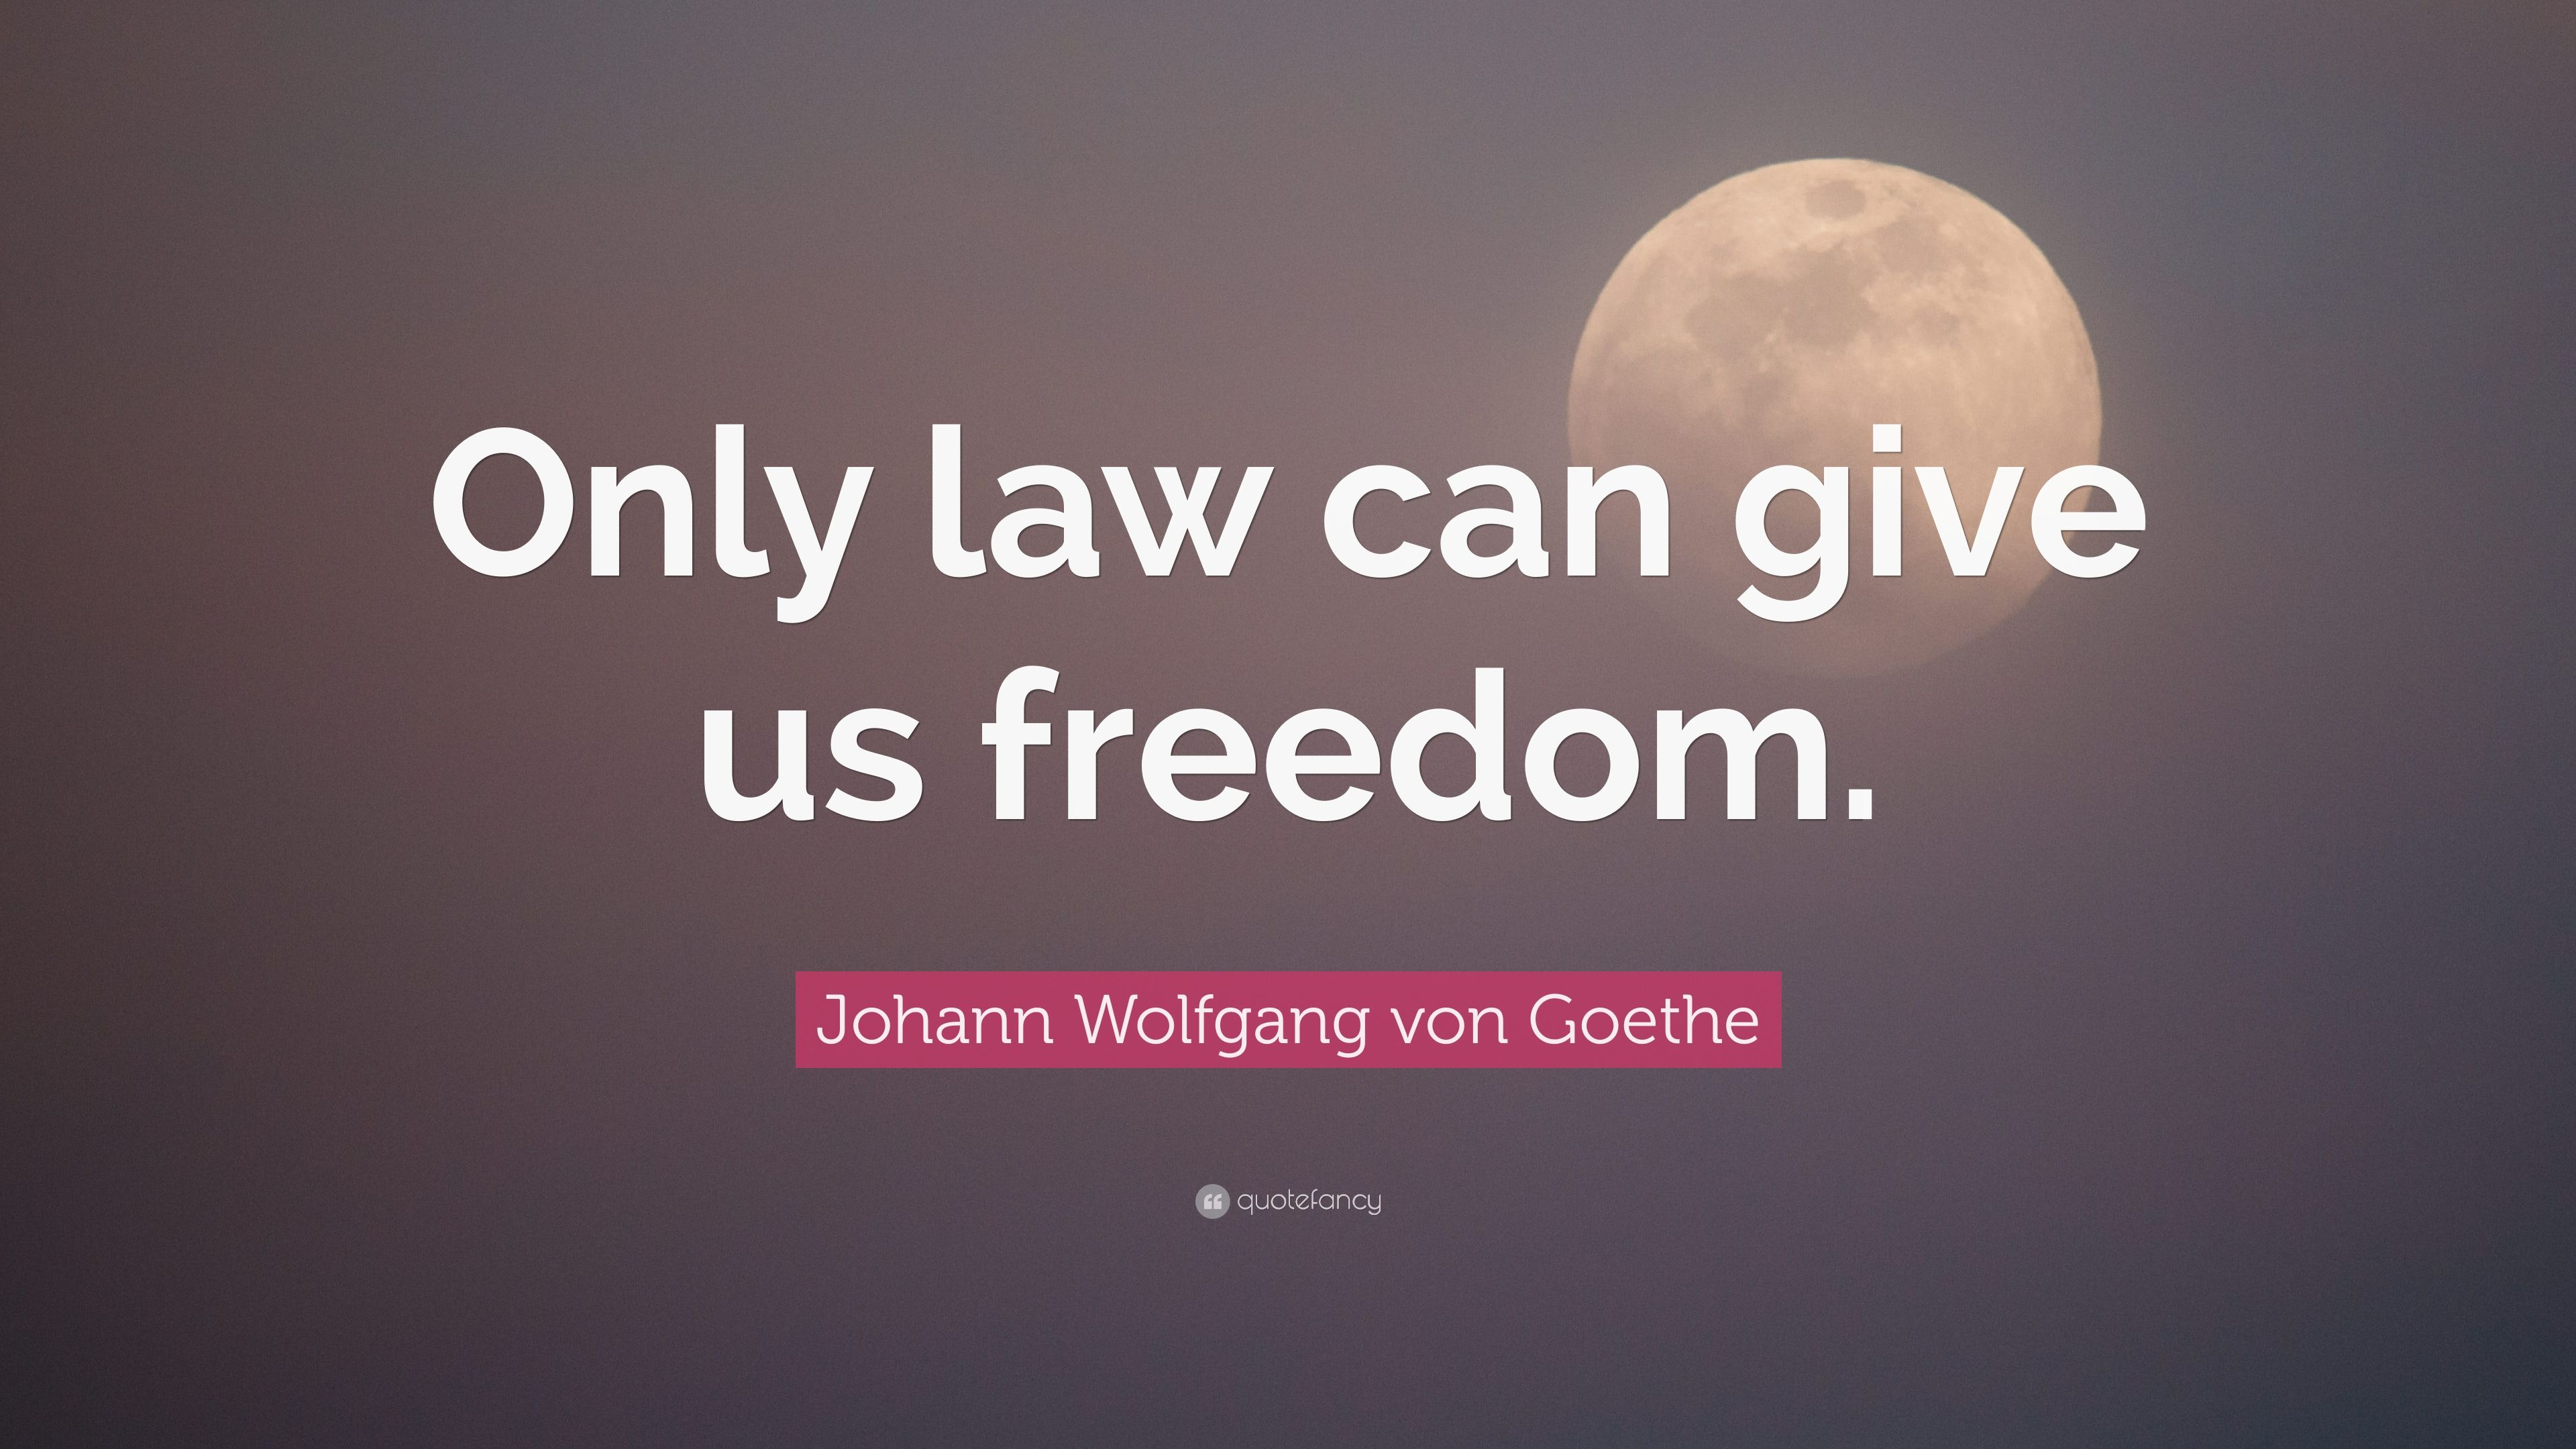 Johann Wolfgang Von Goethe Quote Only Law Can Give Us Freedom 10 Wallpapers Quotefancy